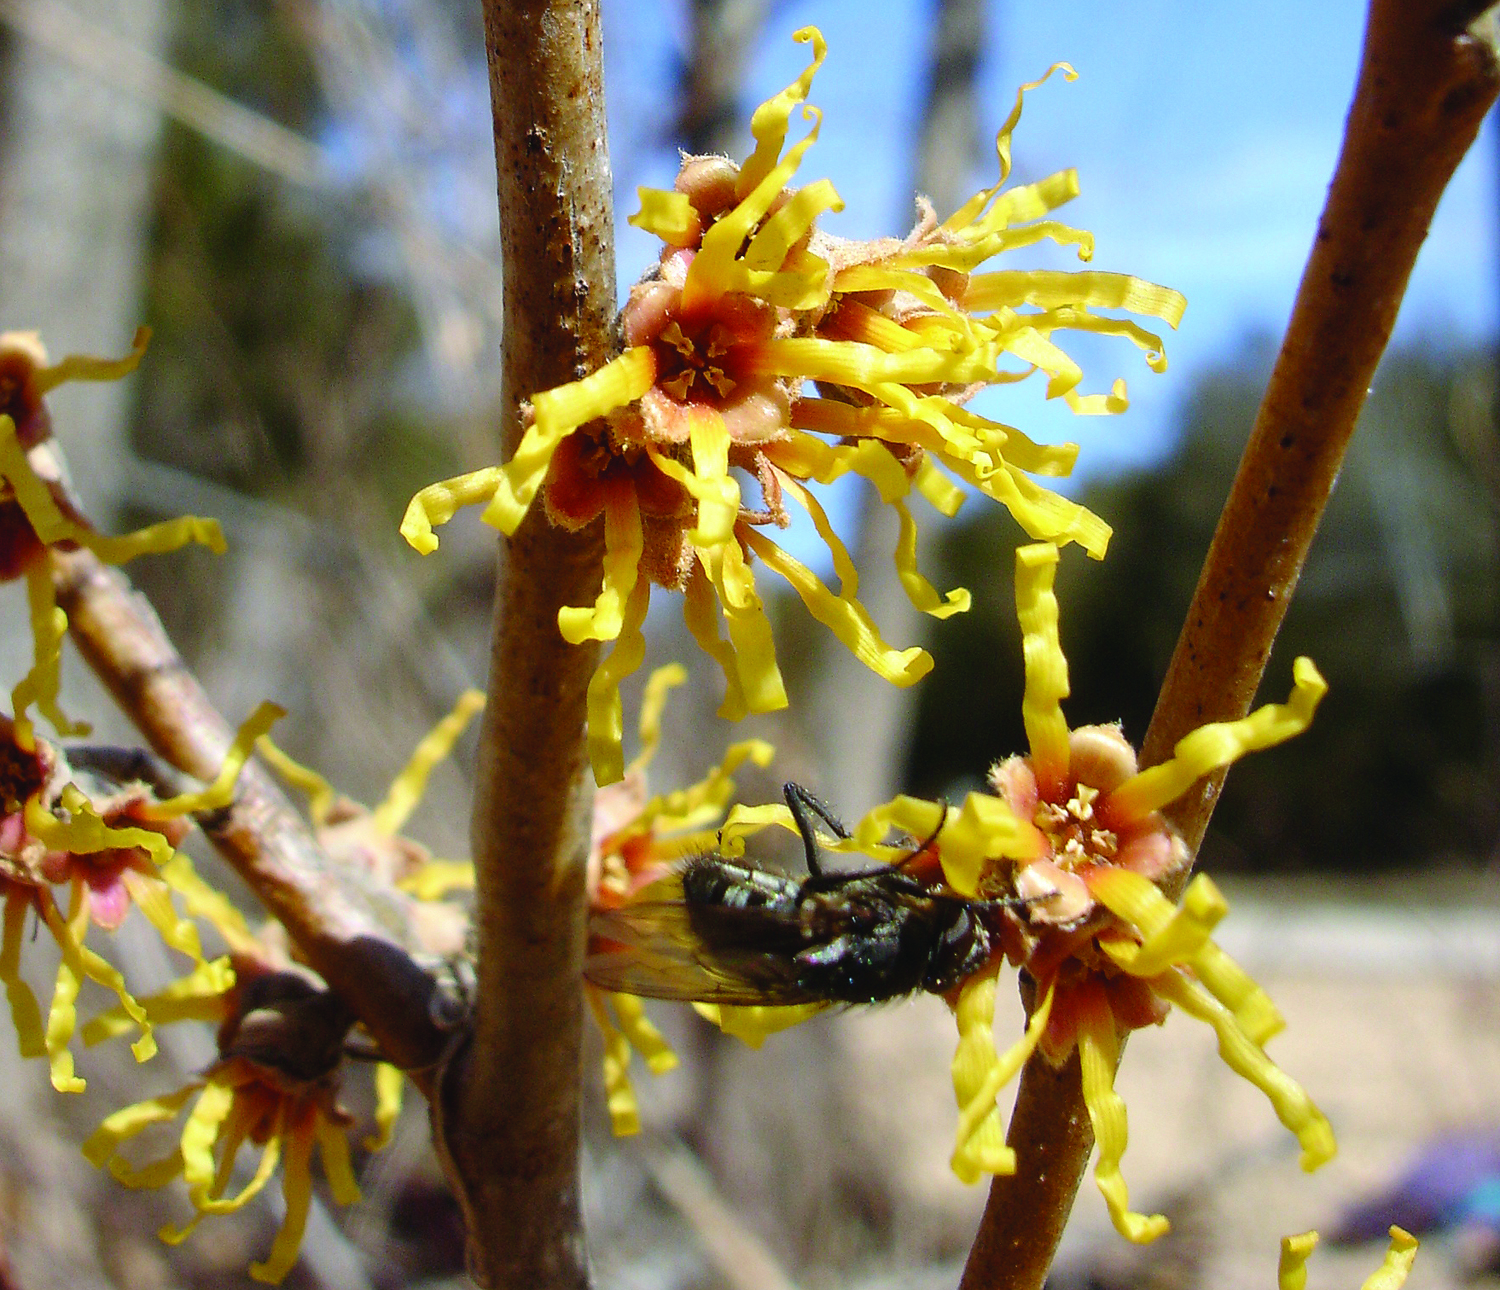 A photo of a fly pollinating witchhazel.